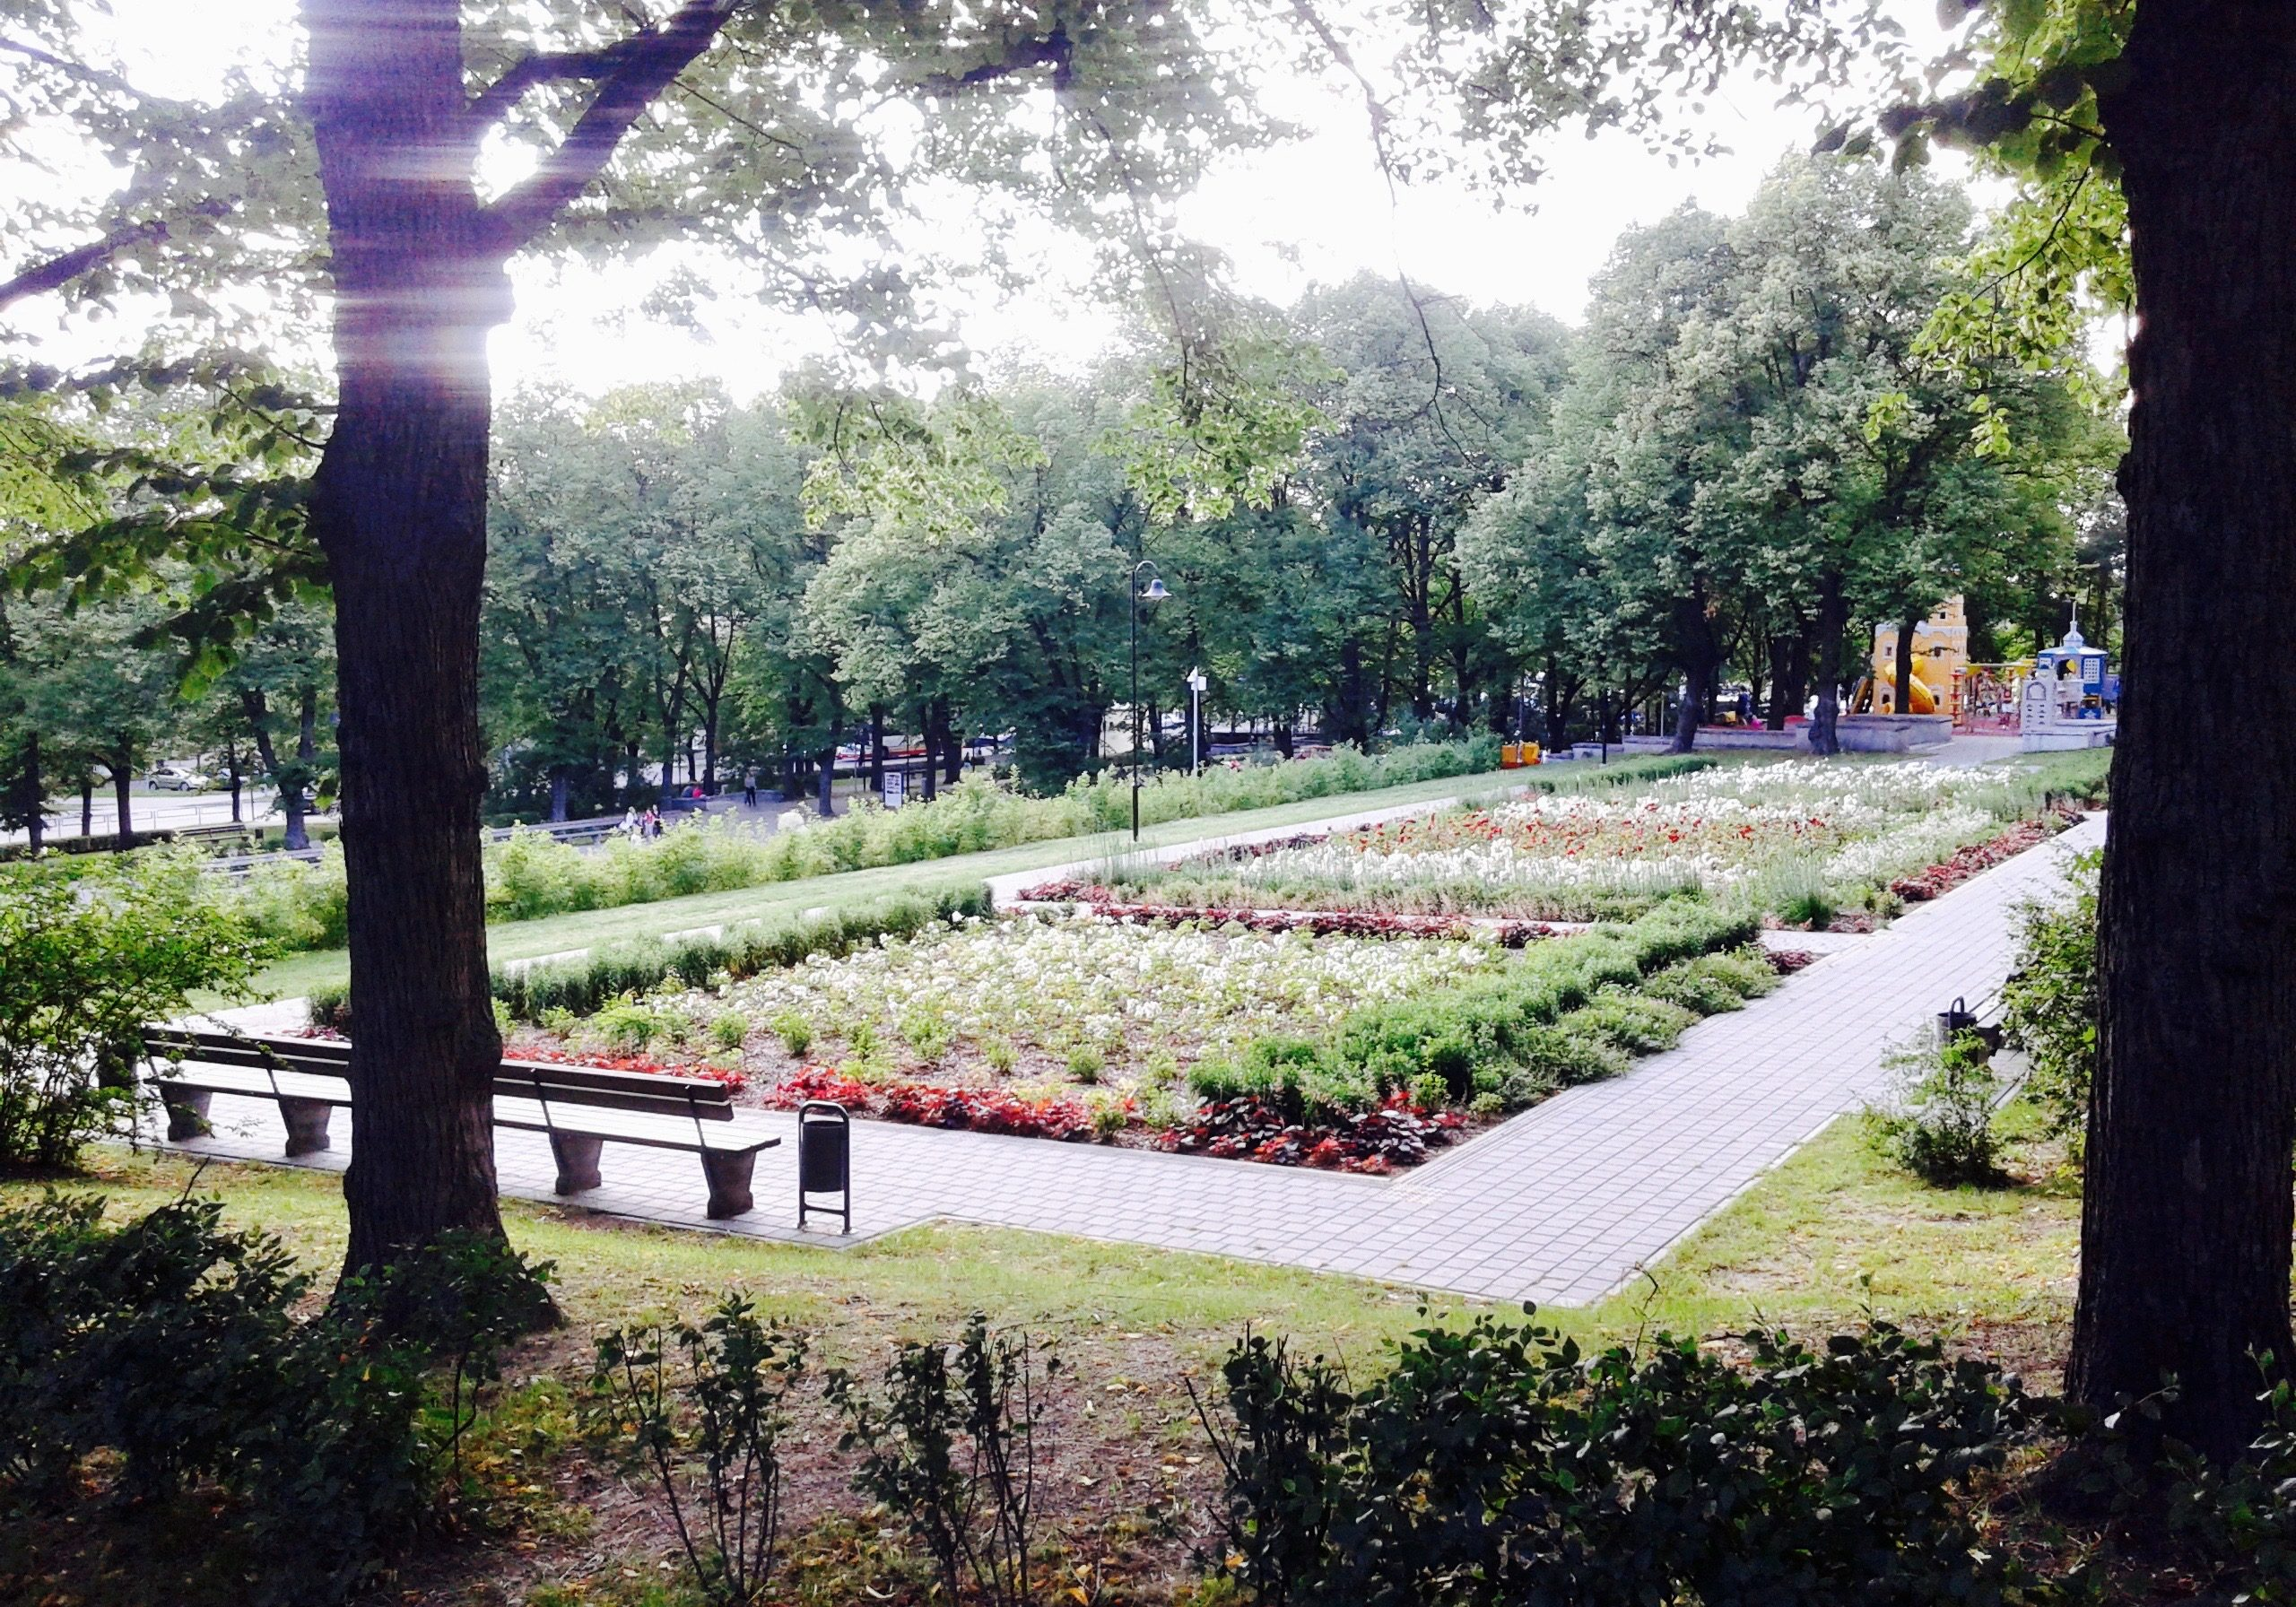 The park garden in Grizinkalns